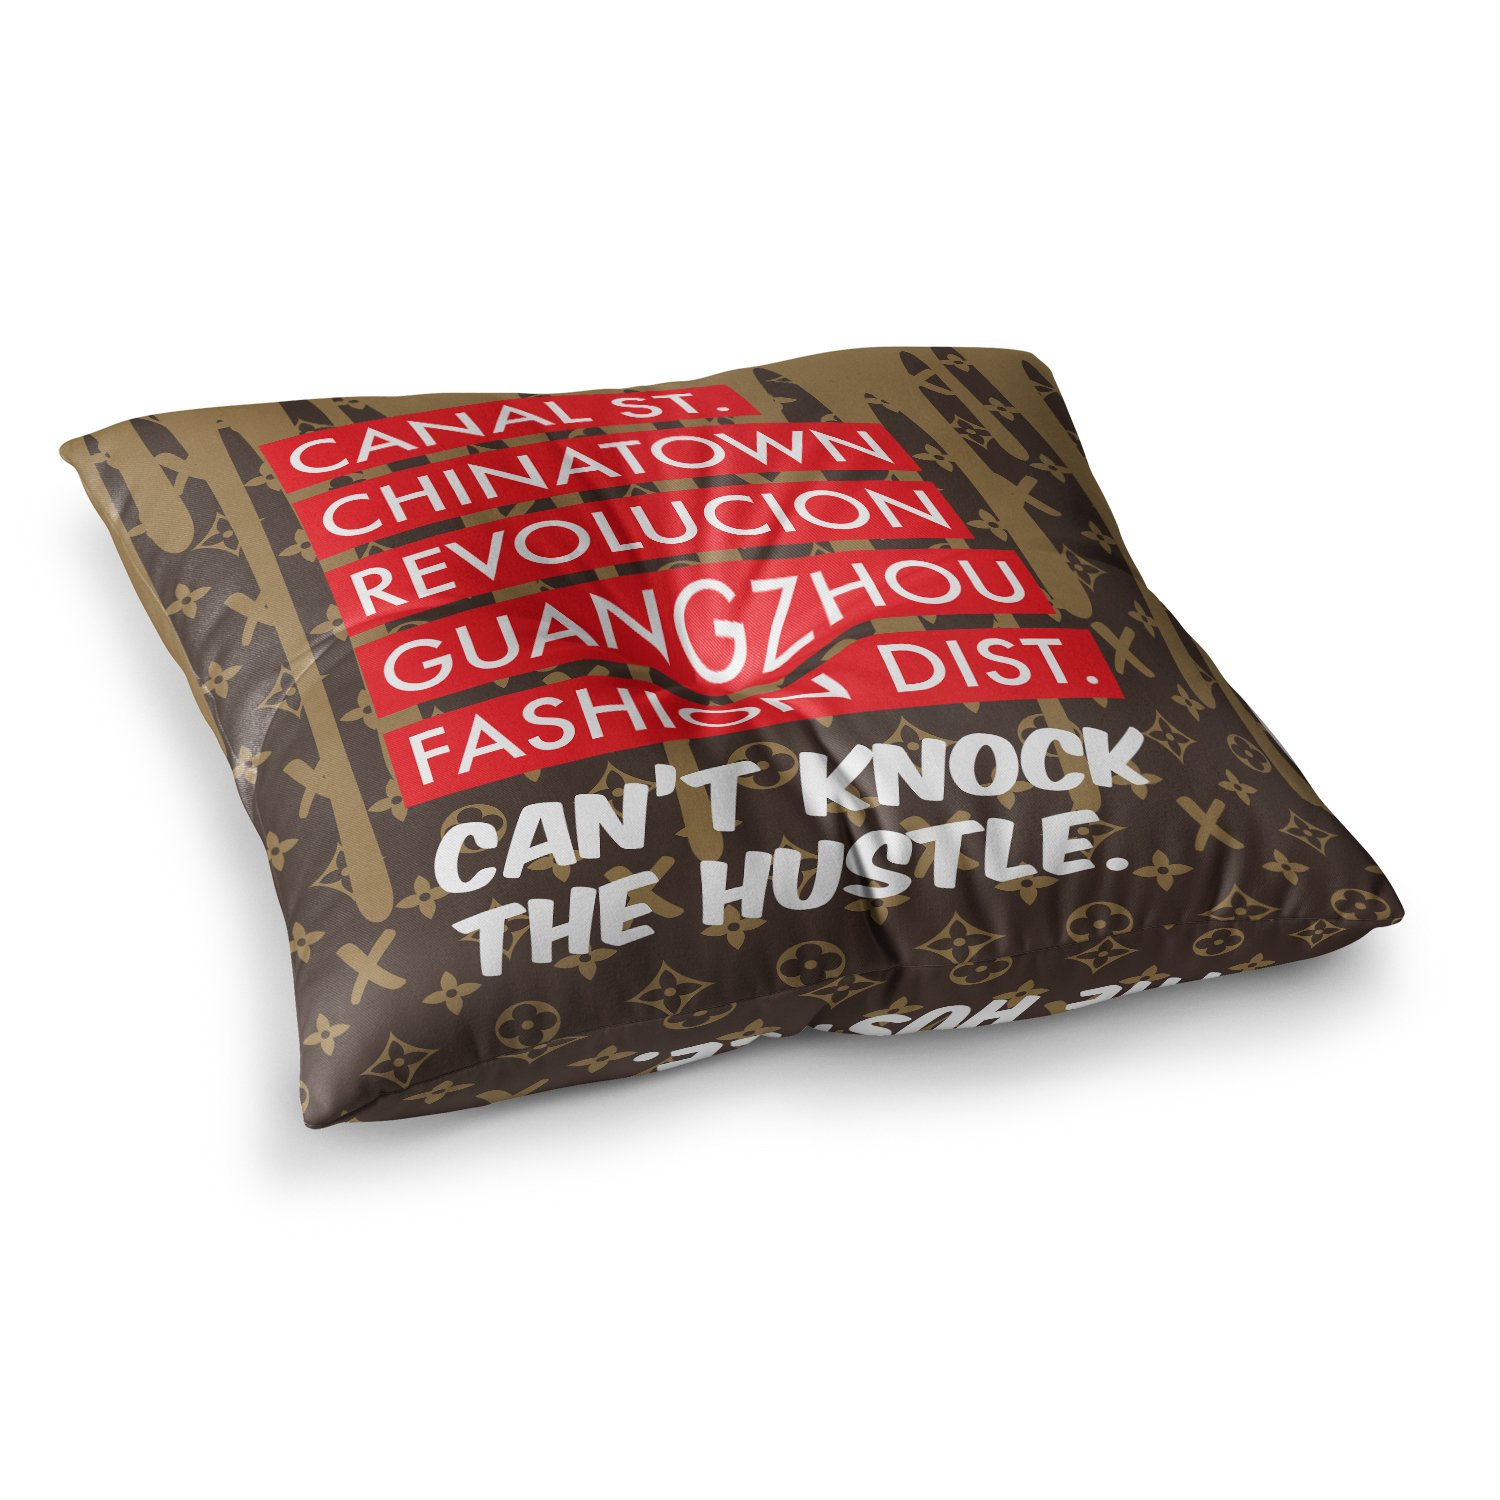 Kess InHouse Just L Cant Knock The Hustle BRN Red Urban 23 x 23 Square Floor Pillow